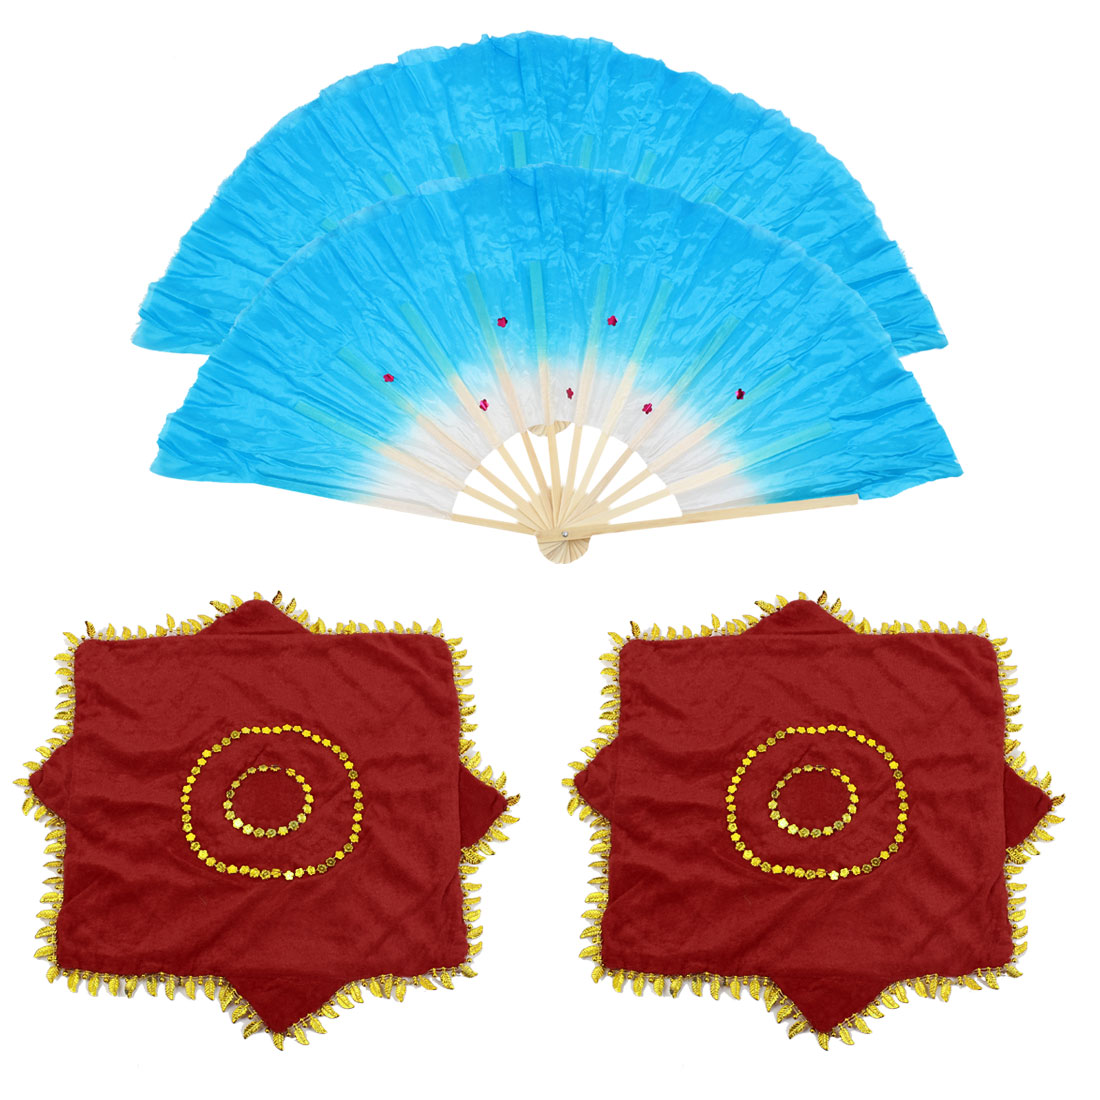 Bamboo Ribs Fabric Foldable Chinese Folk Dancing Fan Leaves Hem Handkerchief Blue 2 Sets